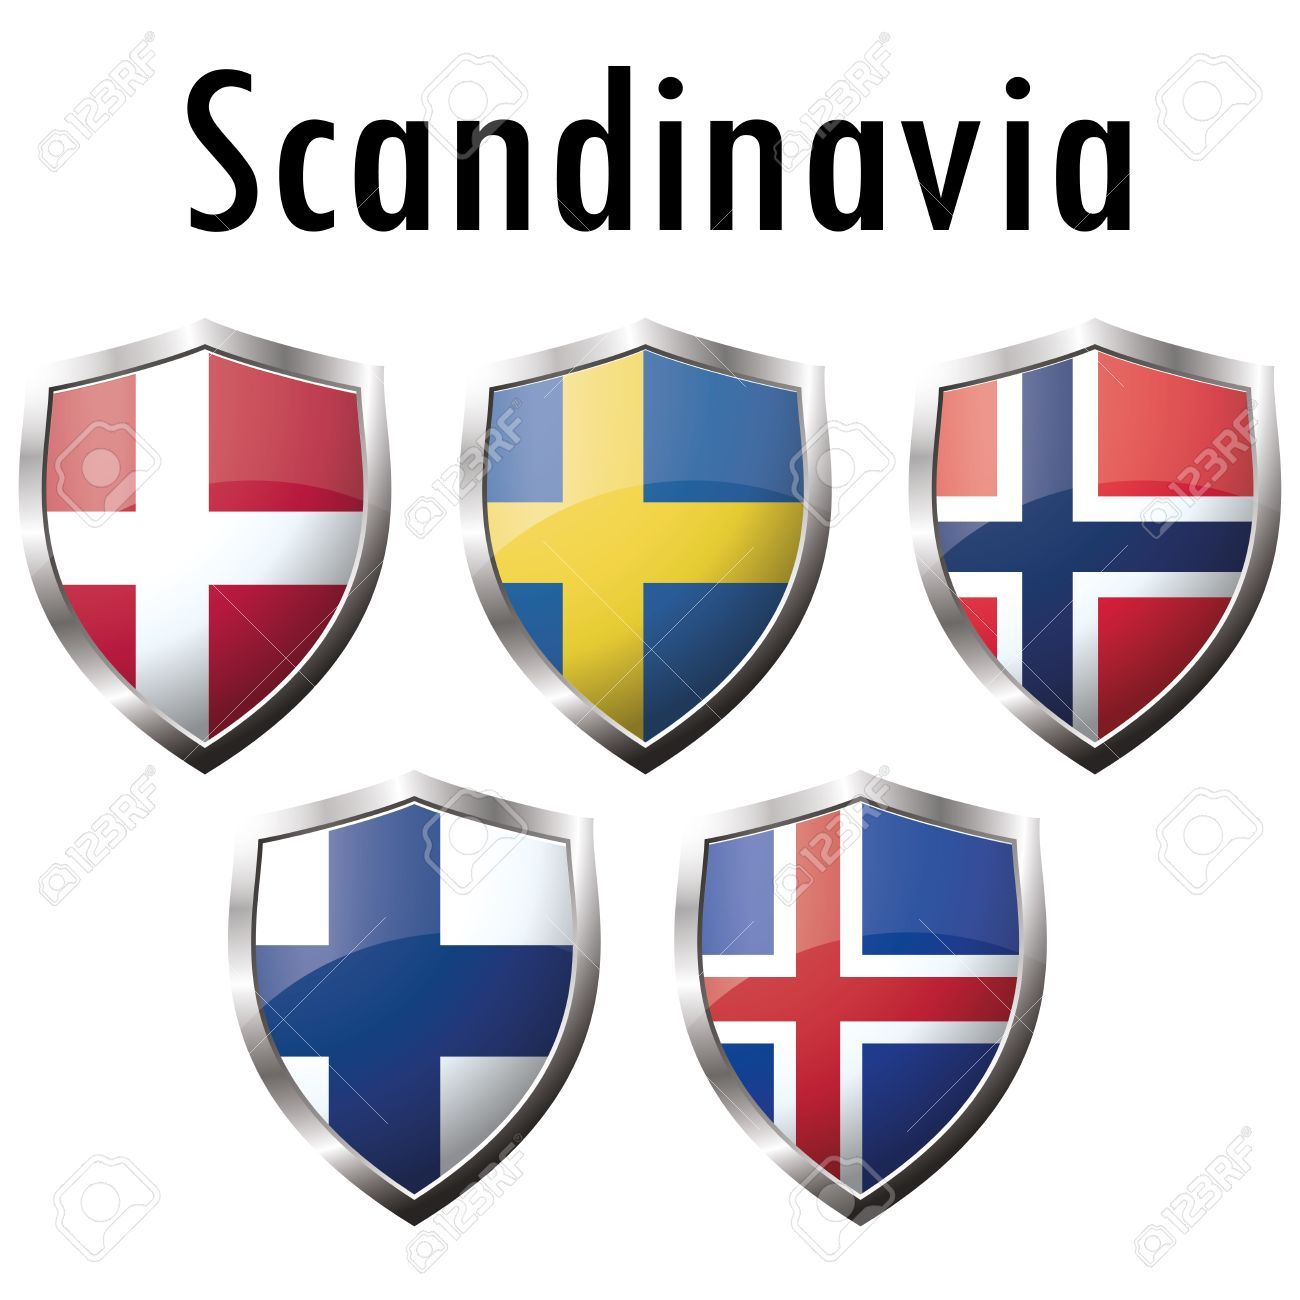 Scandinavia Live Iptv New M3u Free Channels 30 09 2019 Country Flags Icons Flag Icon Countries And Flags